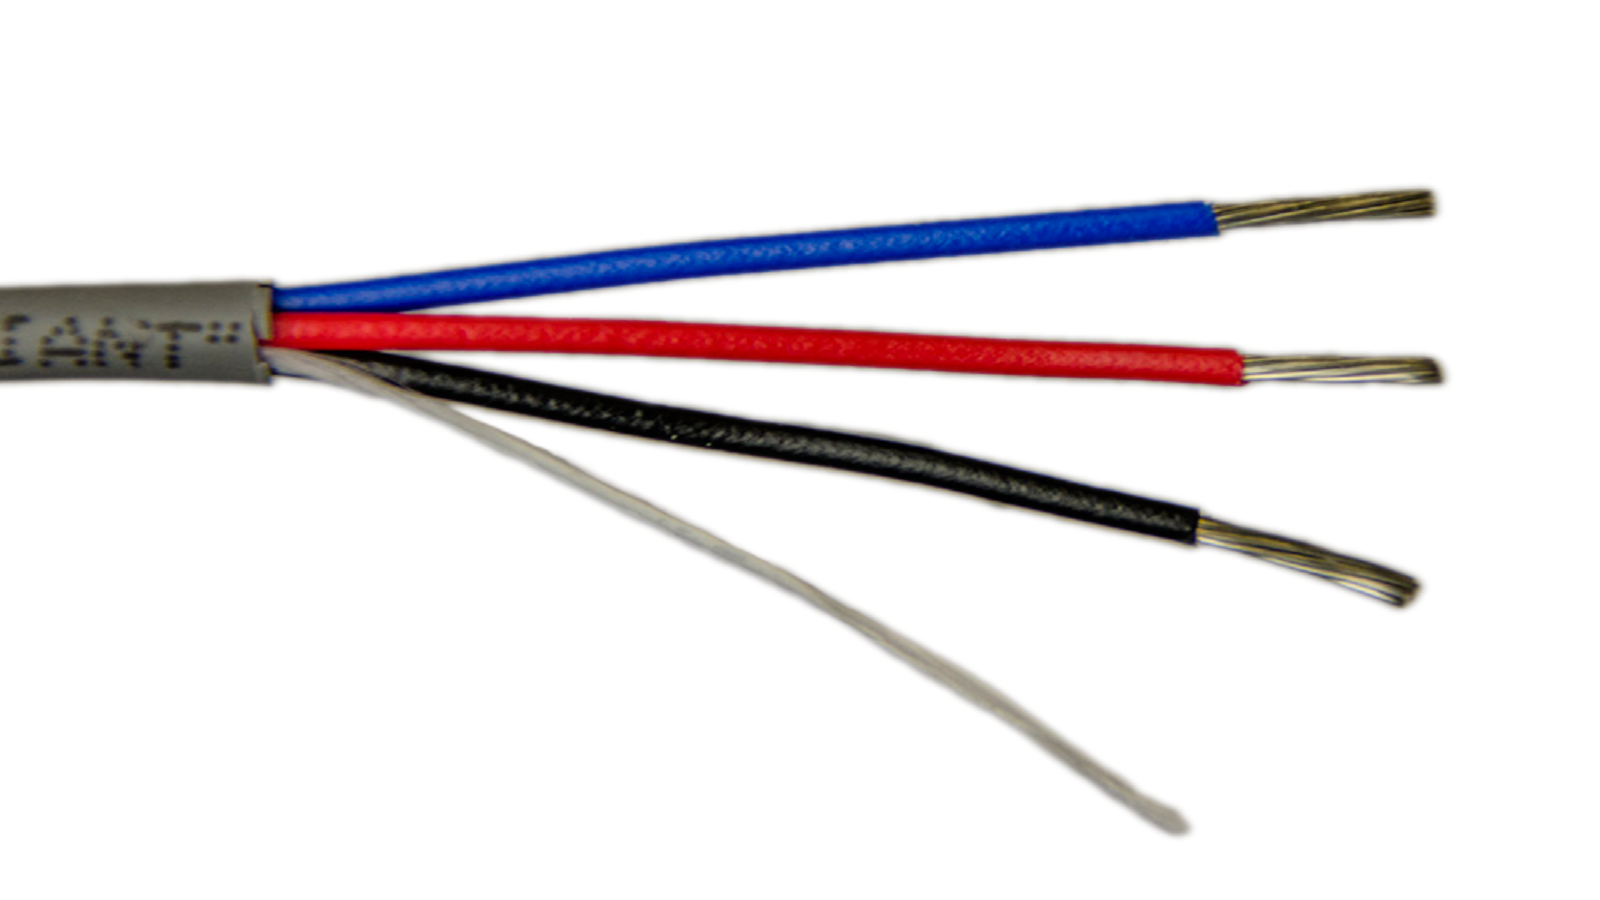 18 3c Oc Gry Oem Systems 18 Awg 3 Conductor Occupancy Sensor Cable With Special Color Code